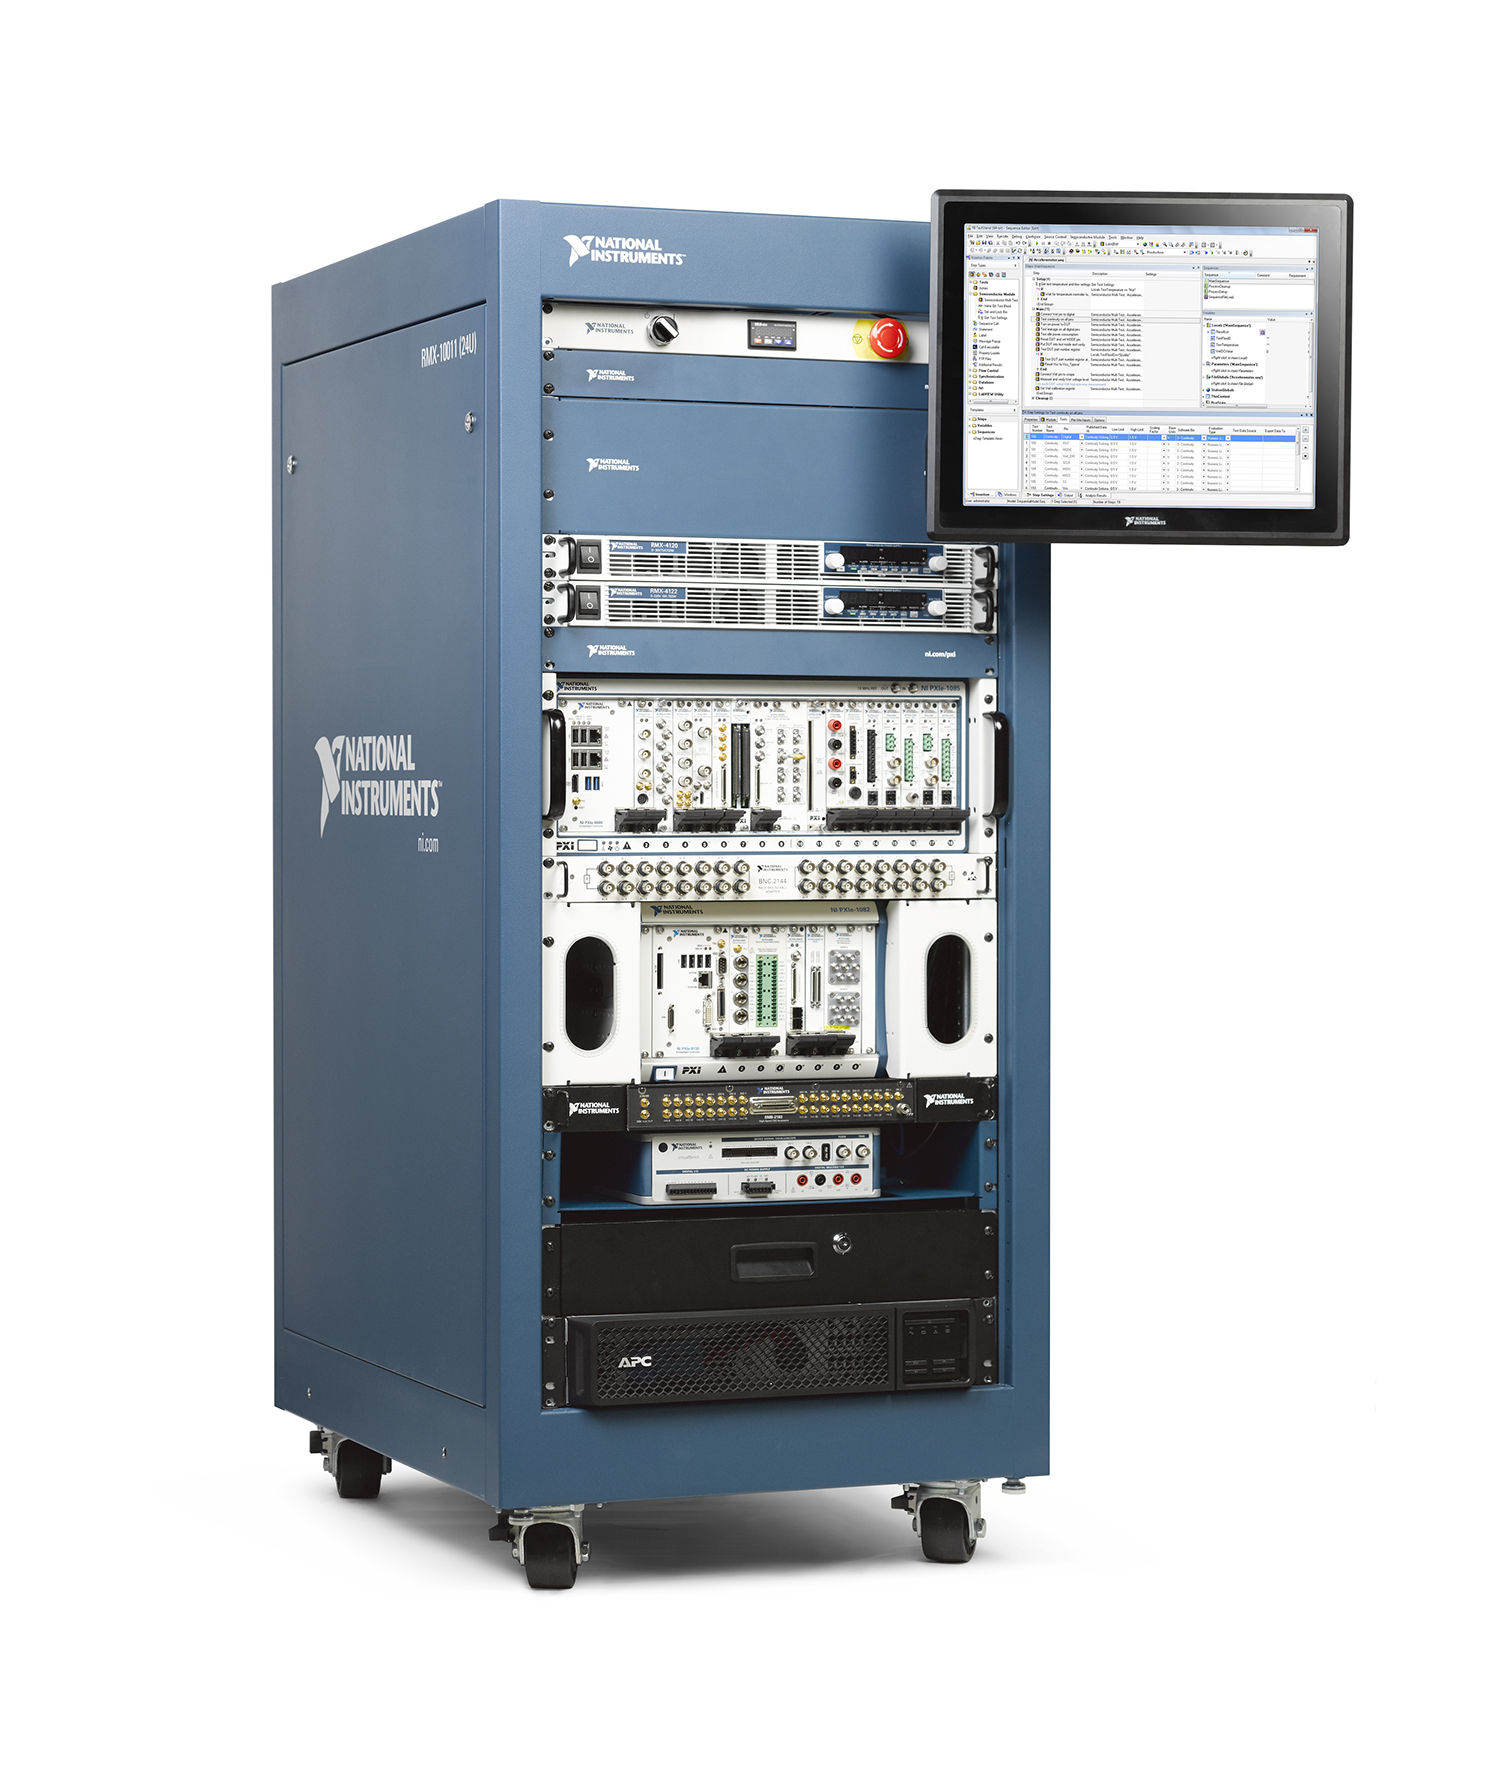 The new ATE Core Configurations deliver core mechanical, power and safety infrastructure to help users accelerate the design and build of automated test systems. (Photo: Business Wire)